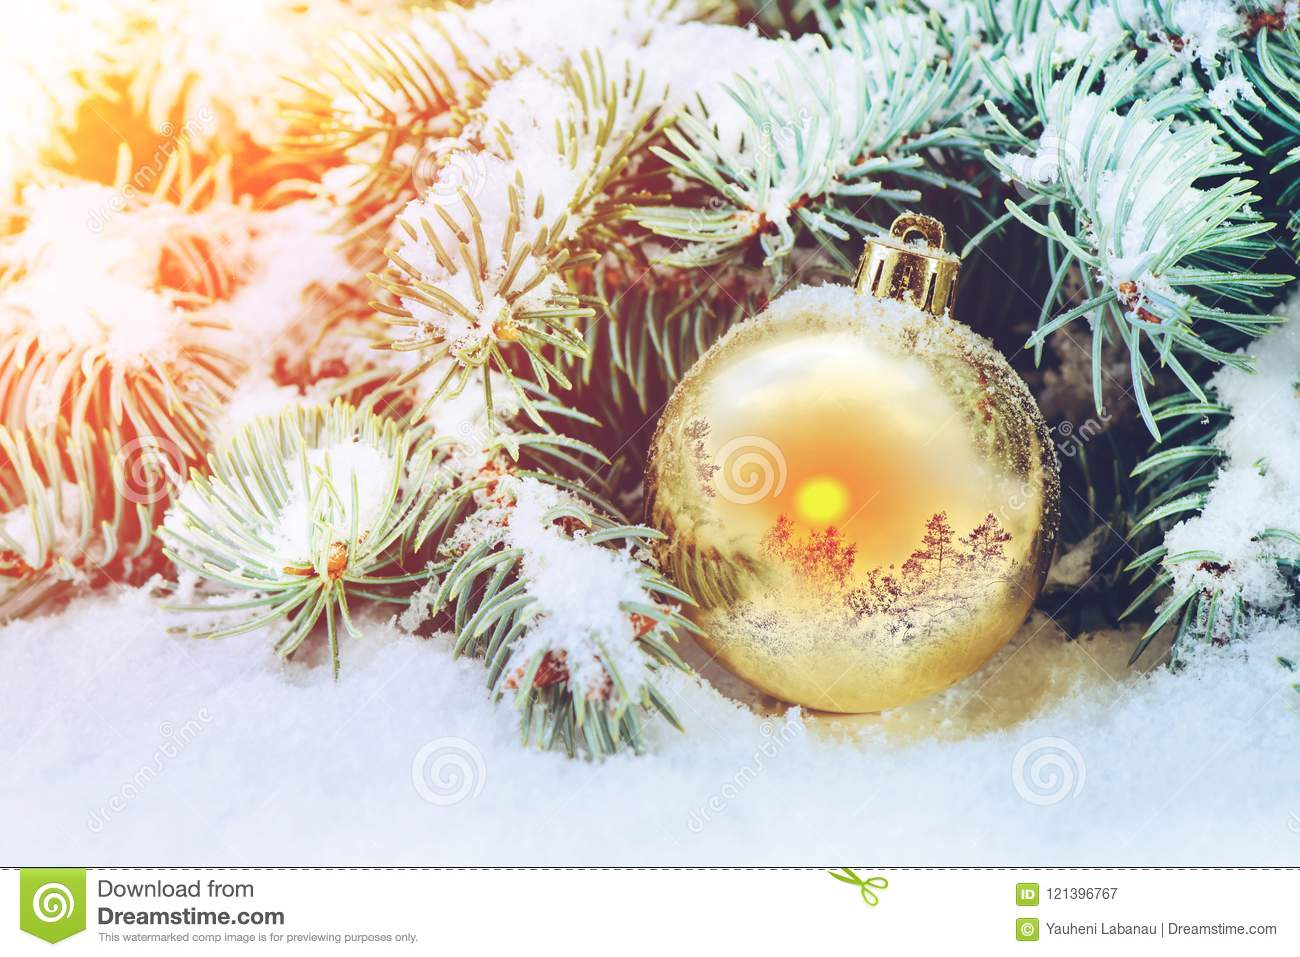 Winter concept, Christmas ball on a spruce branch in the snow with a reflection of the winter landscape